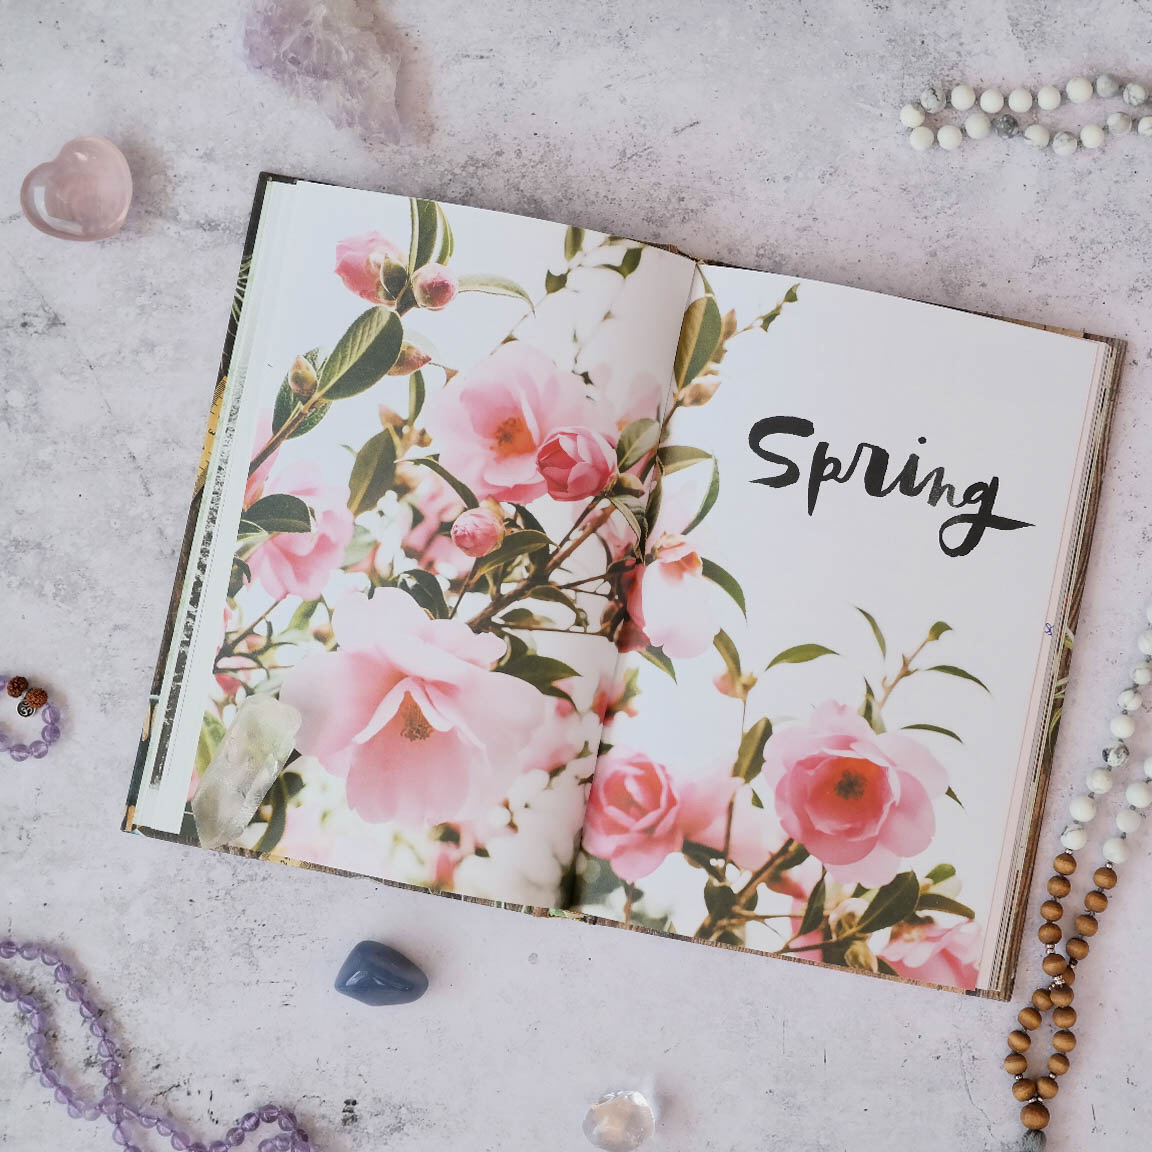 Five ways to Spring into Spring